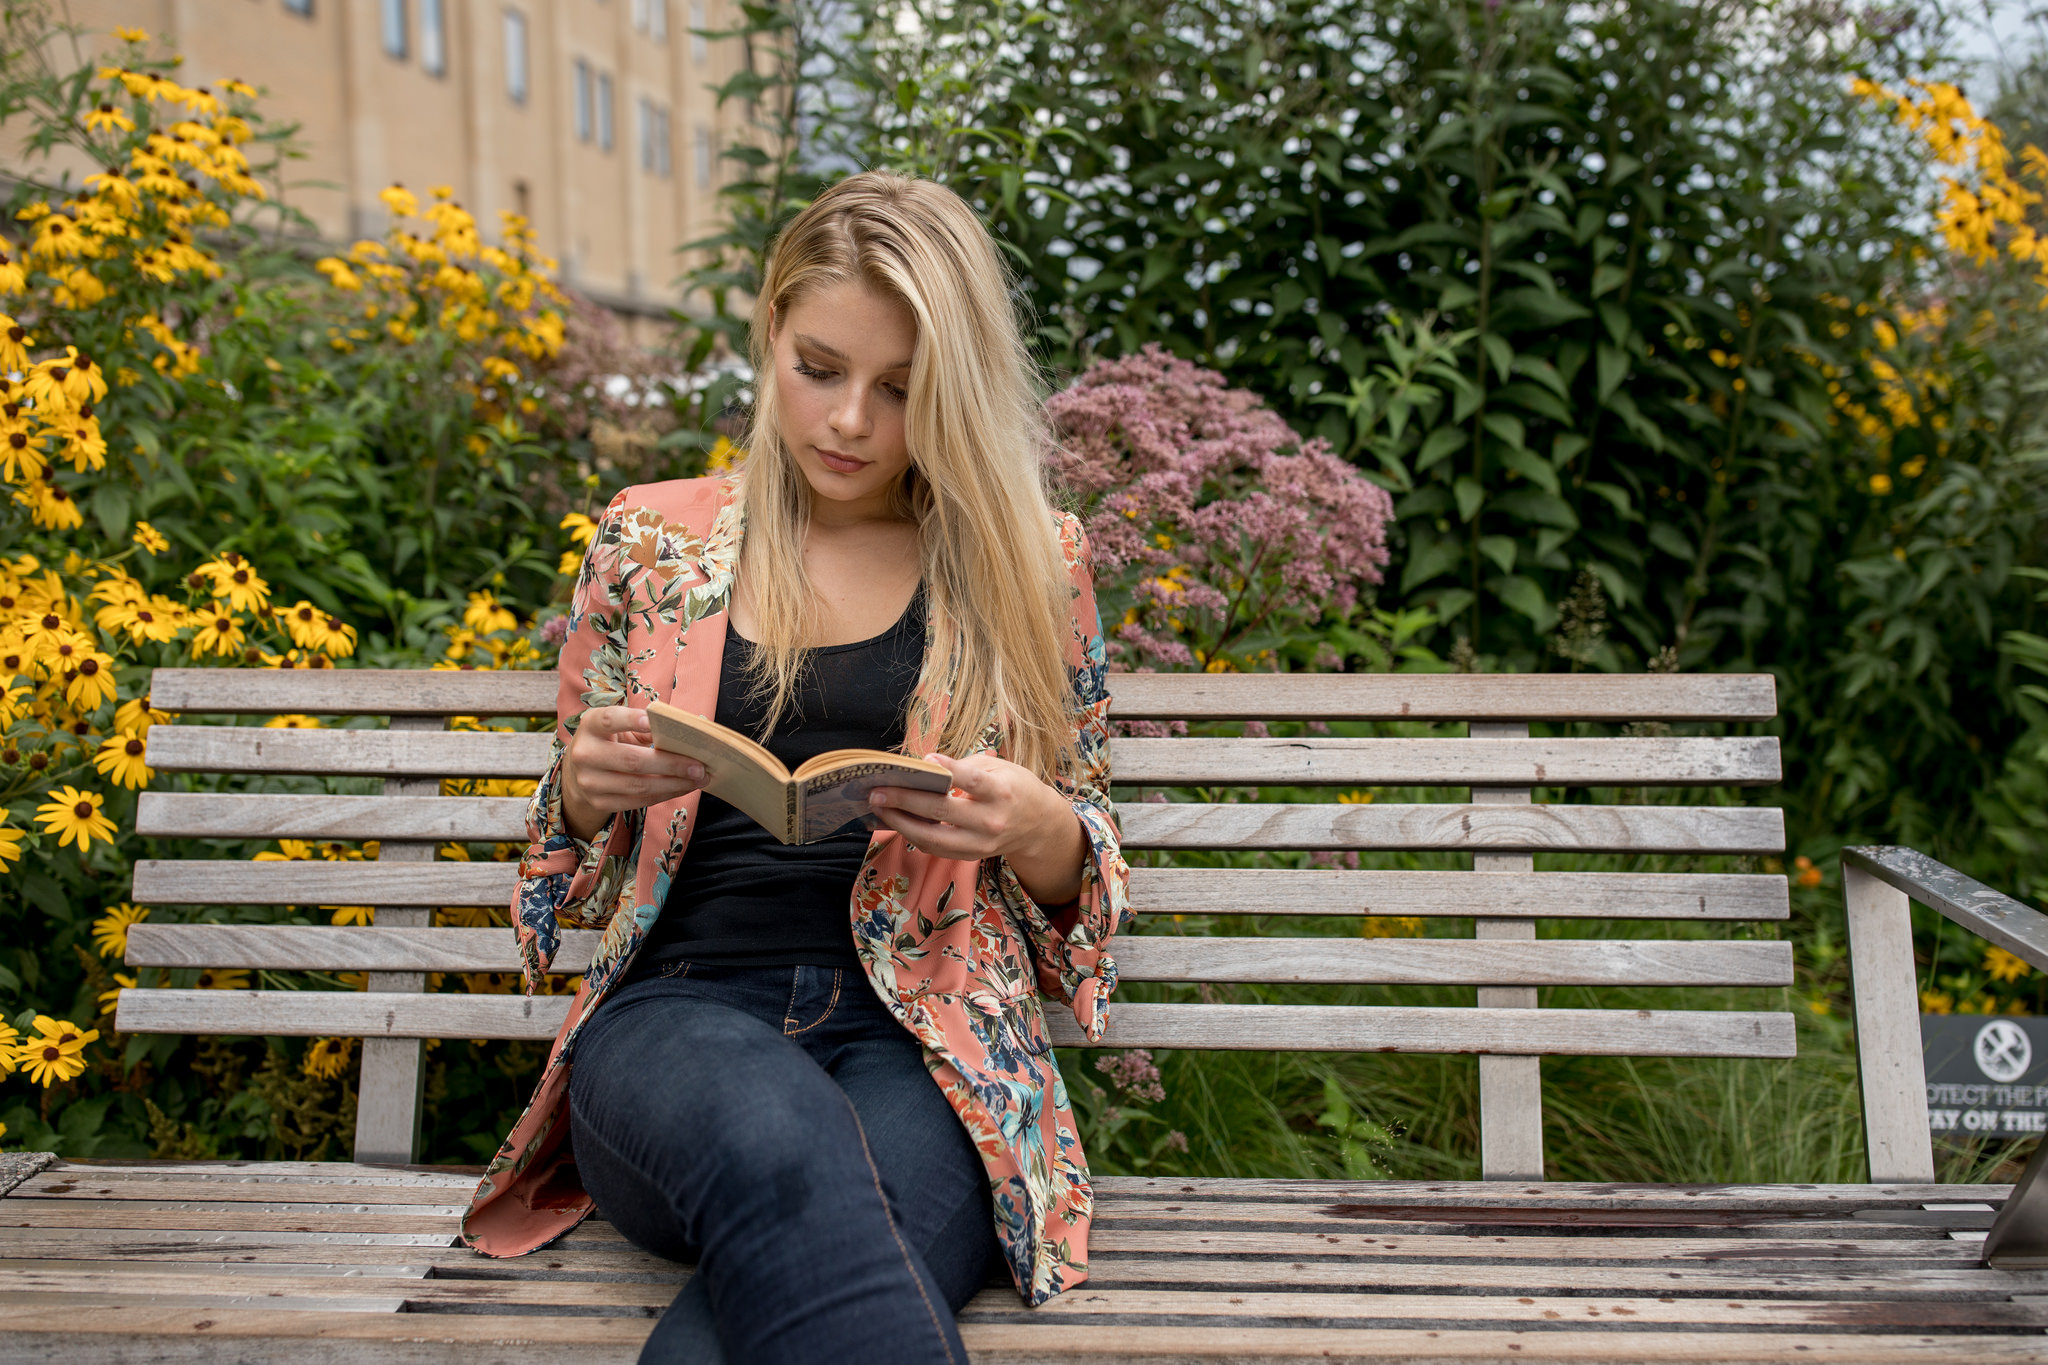 blonde young woman reading alone on bench